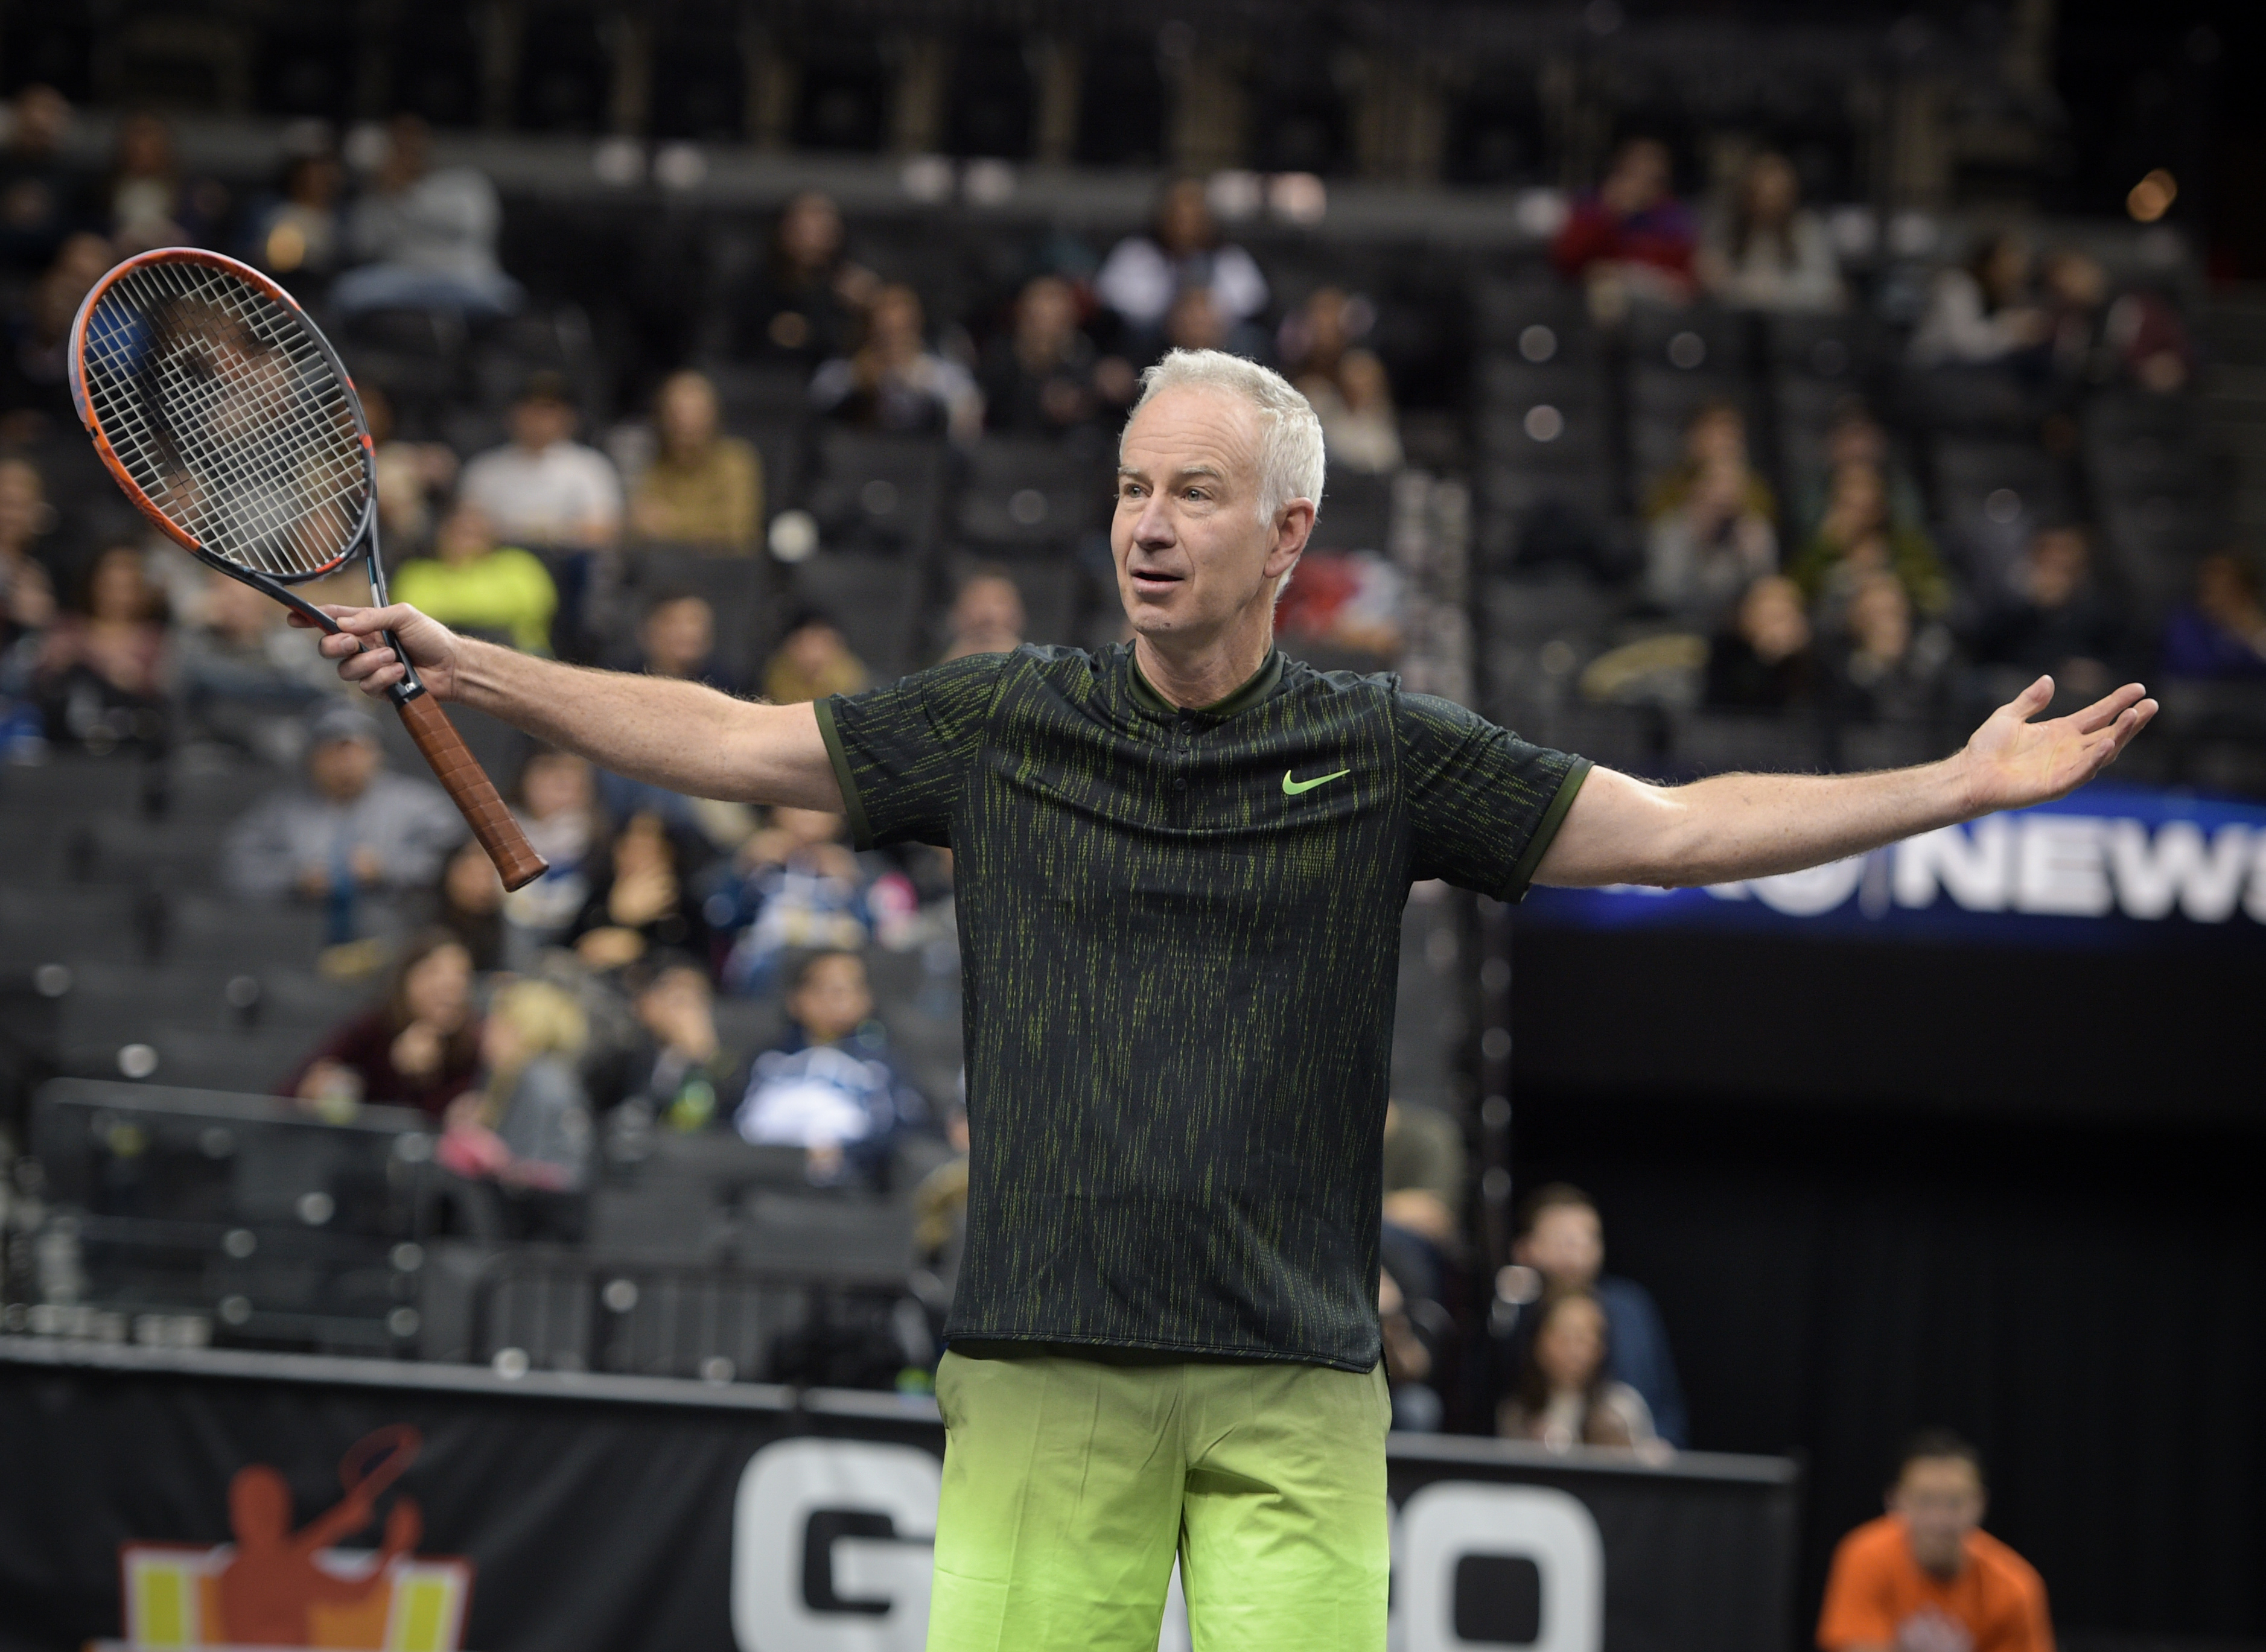 Tennis player John McEnroe plays tennis at the 2016 PowerShares QQQ Cup at Barclays Center of Brooklyn on January 7, 2017 in the Brooklyn borough of New York City.